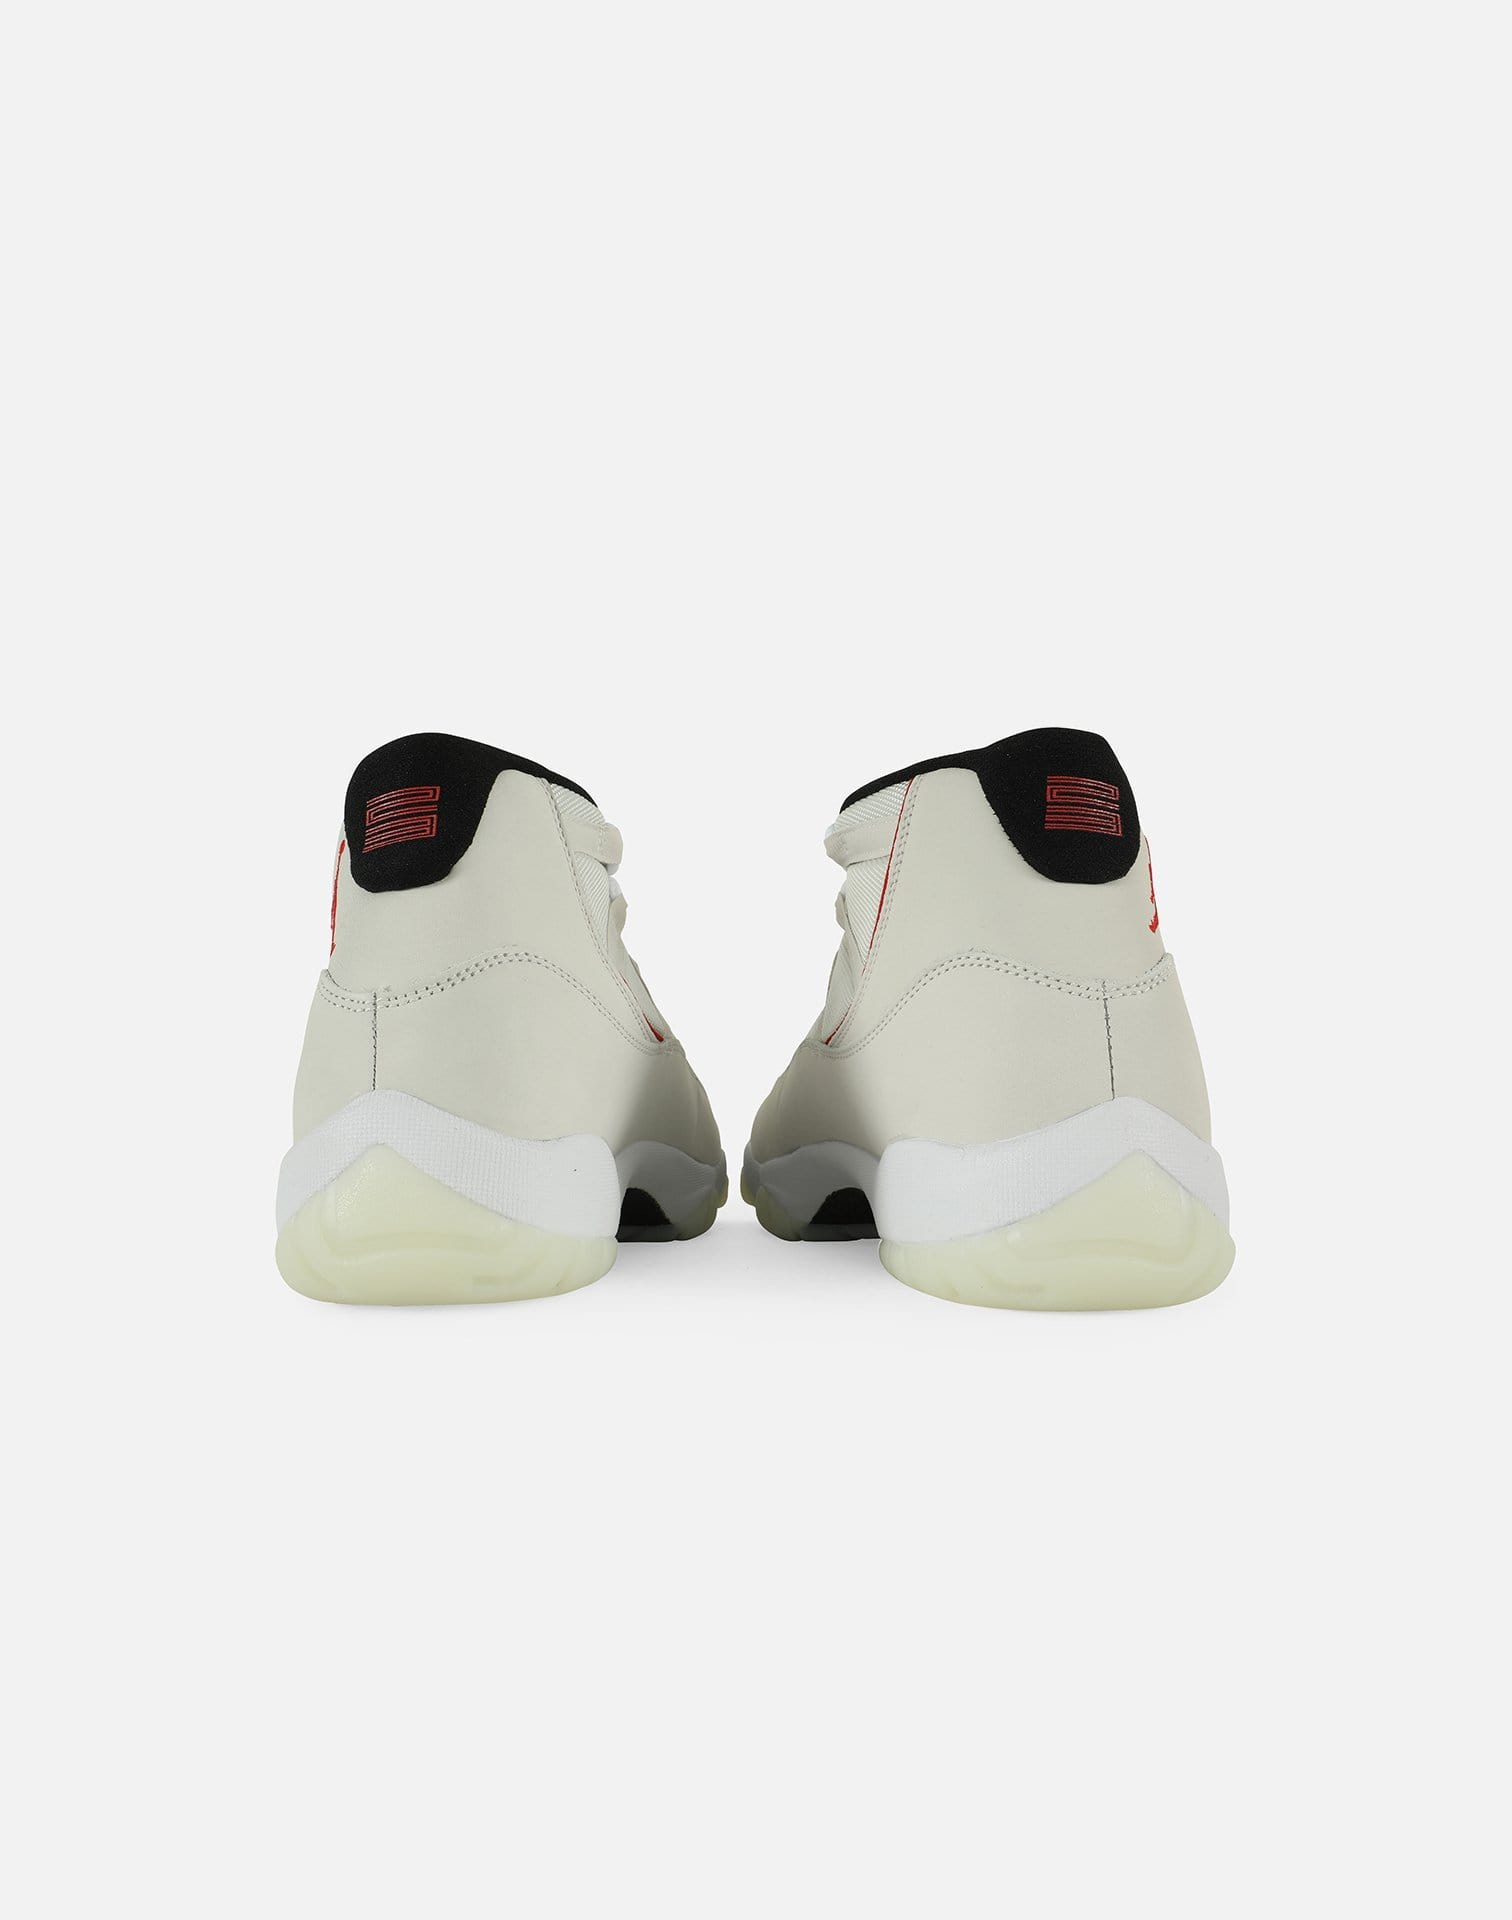 Jordan Men's Air Jordan Retro 11 'Platinum Tint'